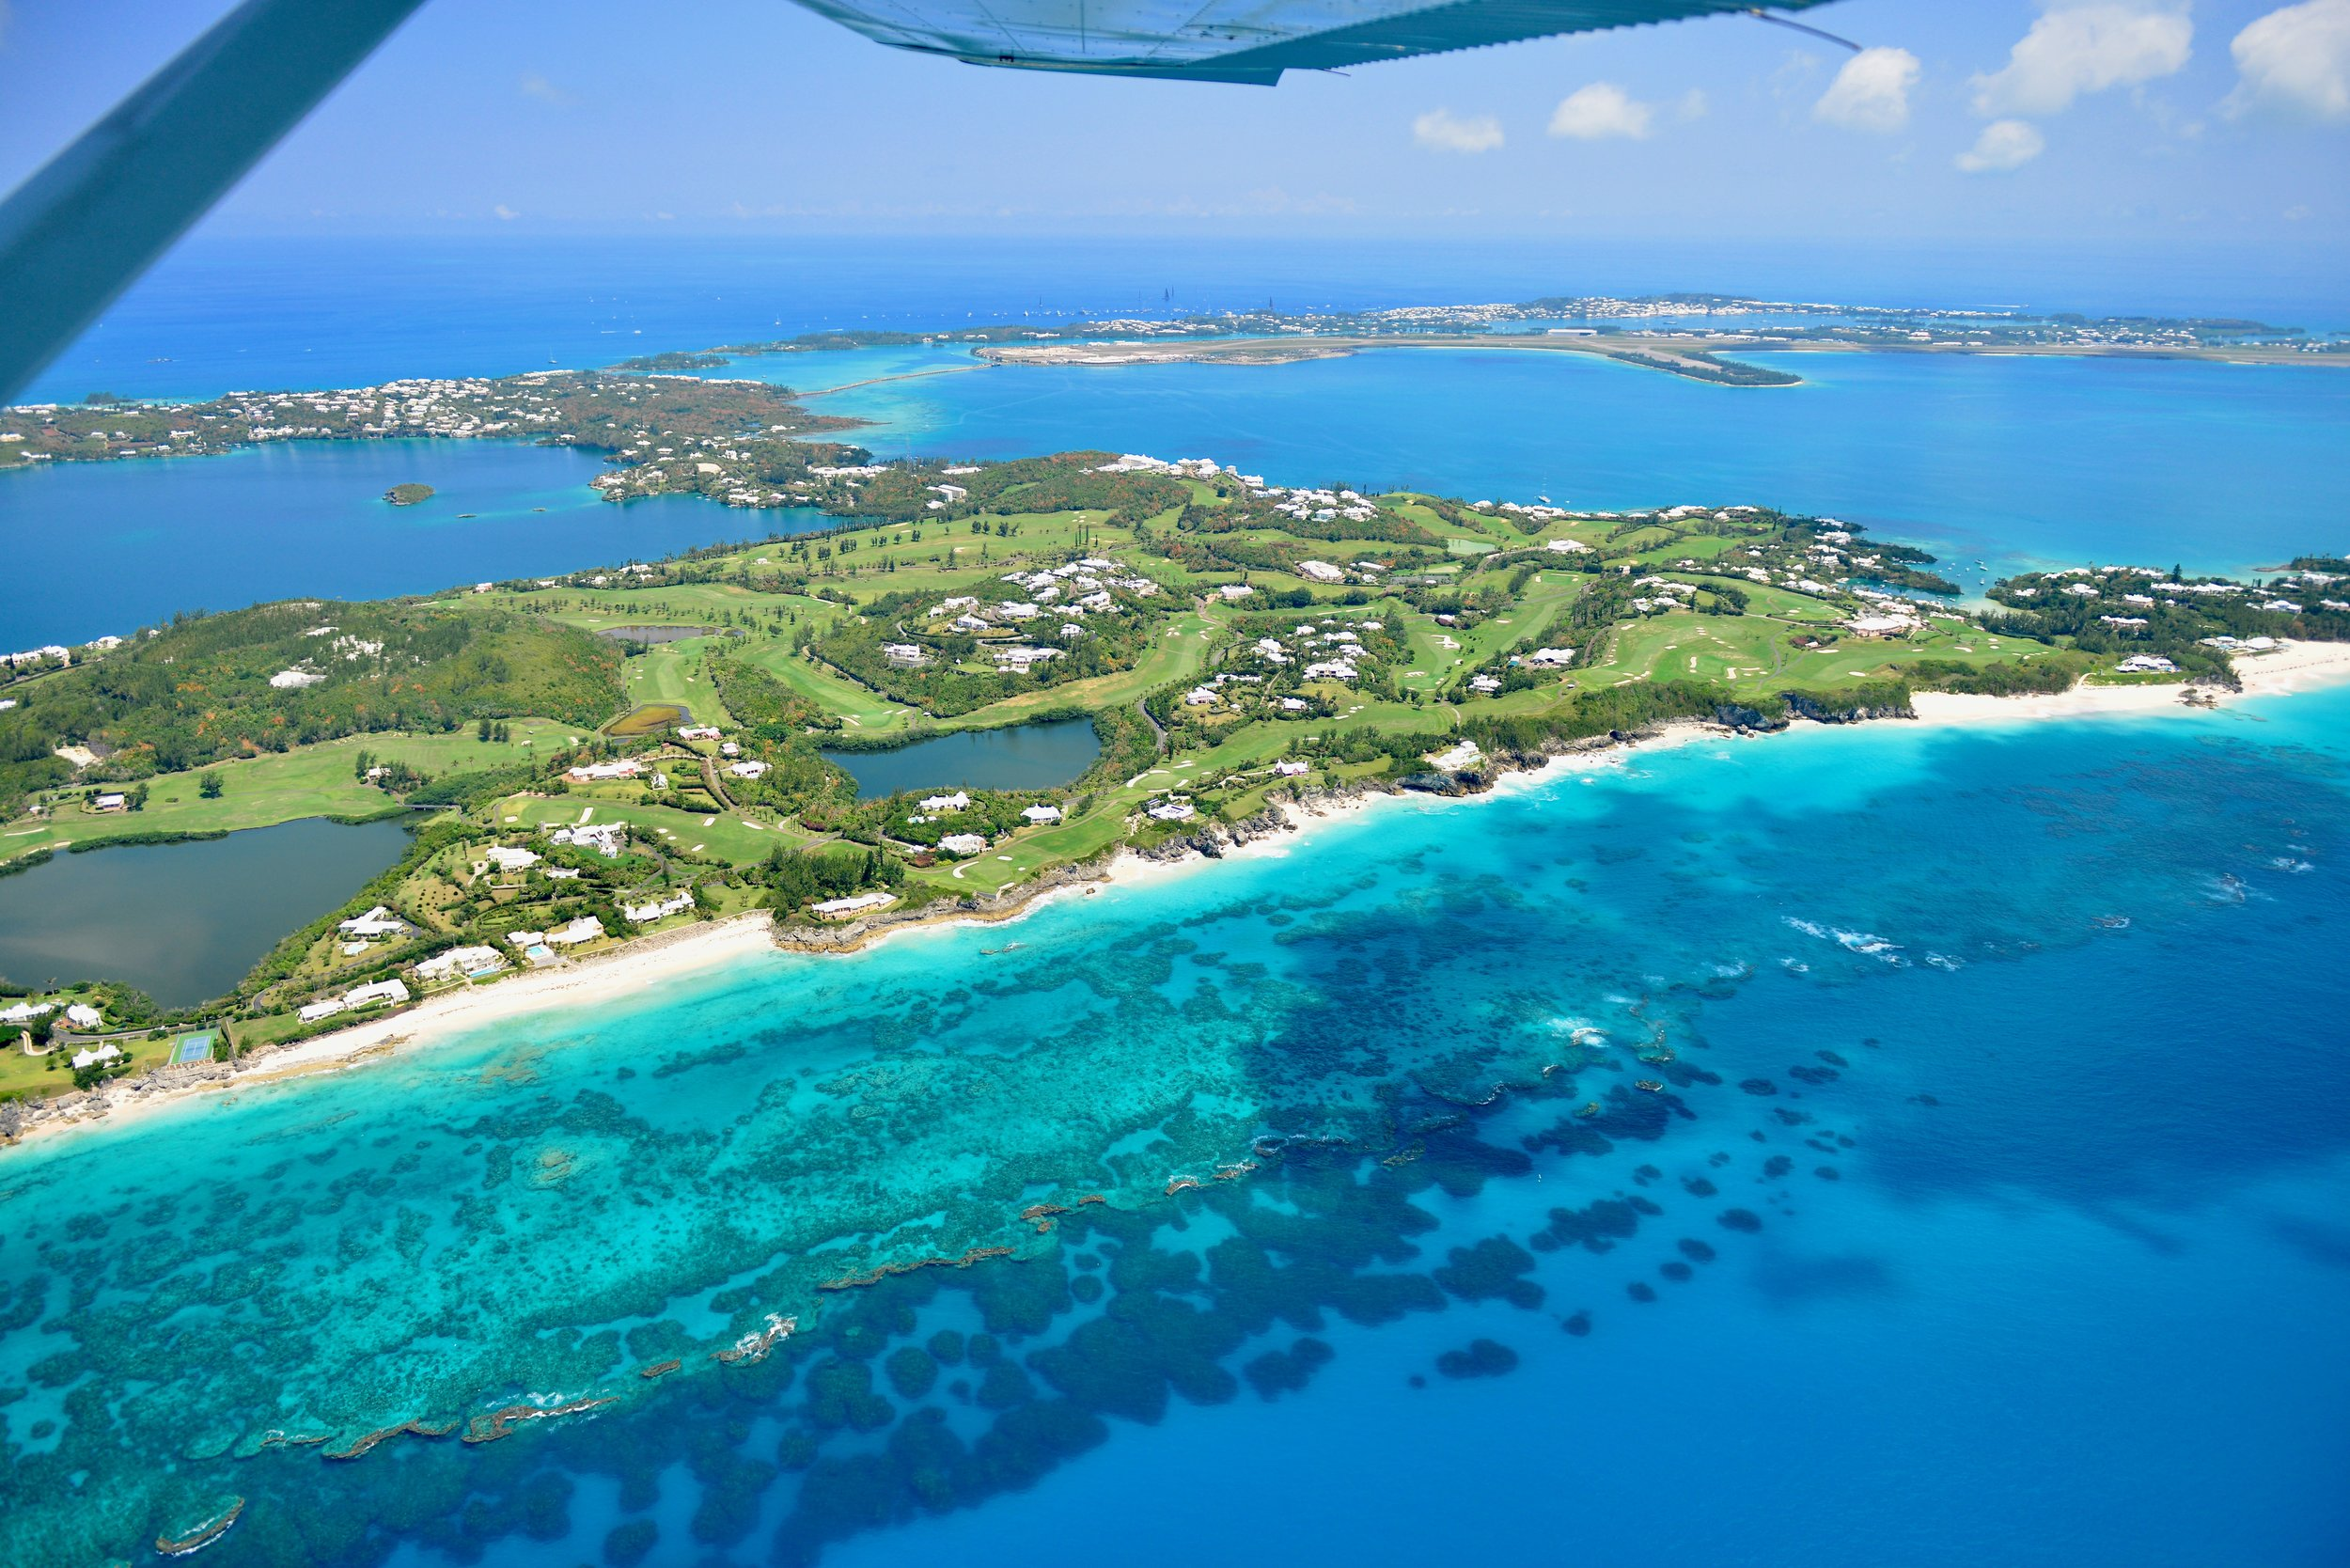 Must Do In Bermuda - Dana Chirps - All of that green area is the golf course at tuckers point